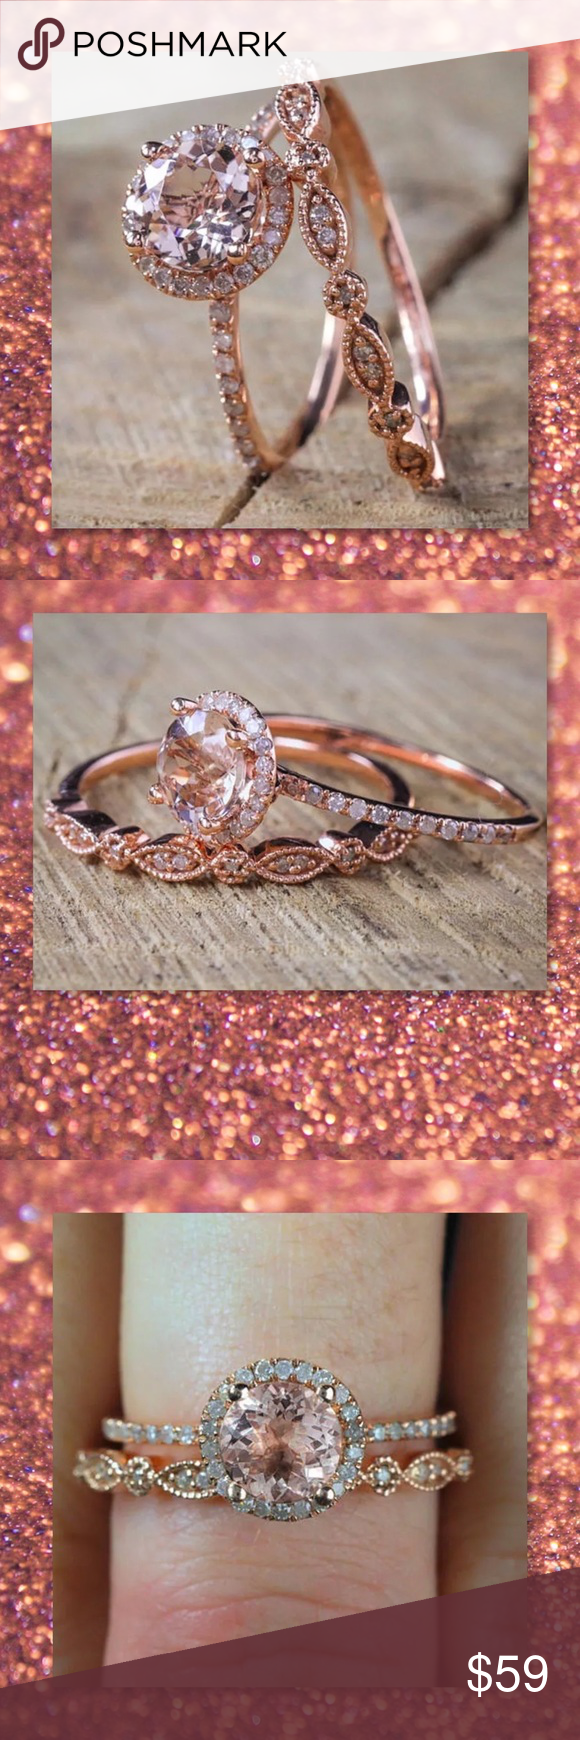 JUST IN🆕 2pc 925 Rose Gold Filled Wedding Set Boutique | White ...